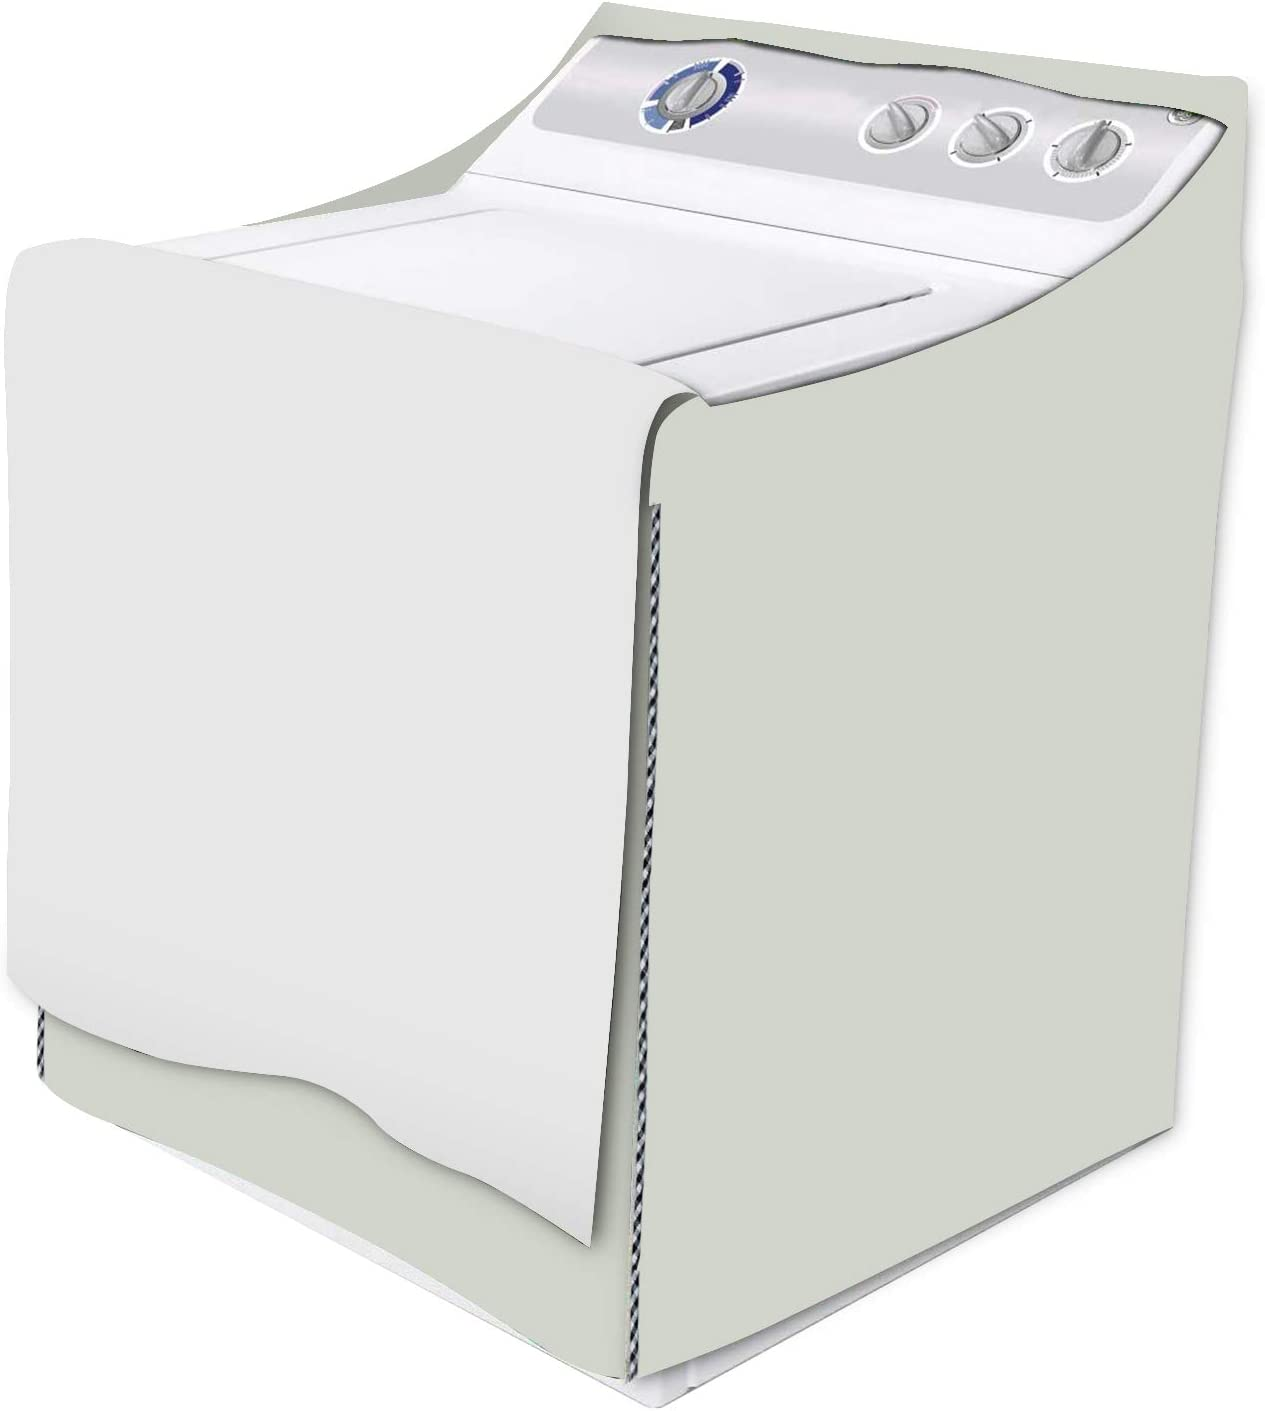 Red wine,W29D28H40in Washing Machine Covers Protector,Washer /& Dryer Cover Waterproof with Zipper for Front-Loading Machine and Dry Machine